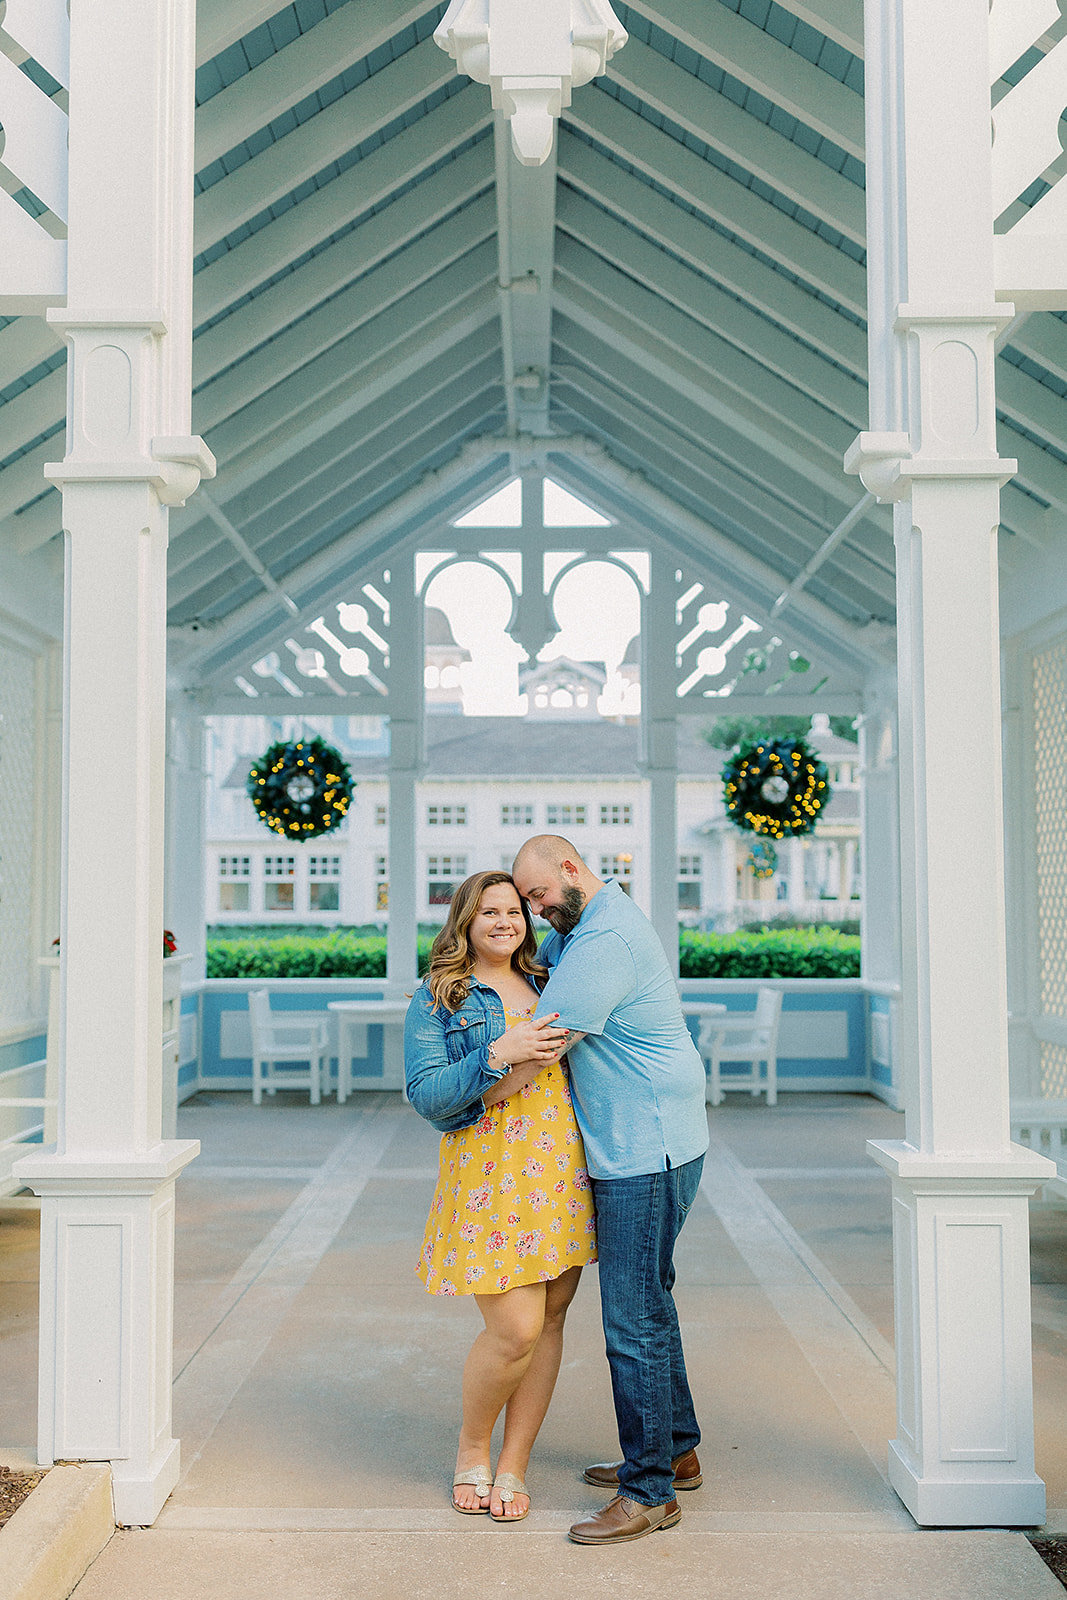 Larisa_+_Craig_Disney_Epcot_Boardwalk_Resort_Engagement_Session_Photographer_Casie_Marie_Photography-41